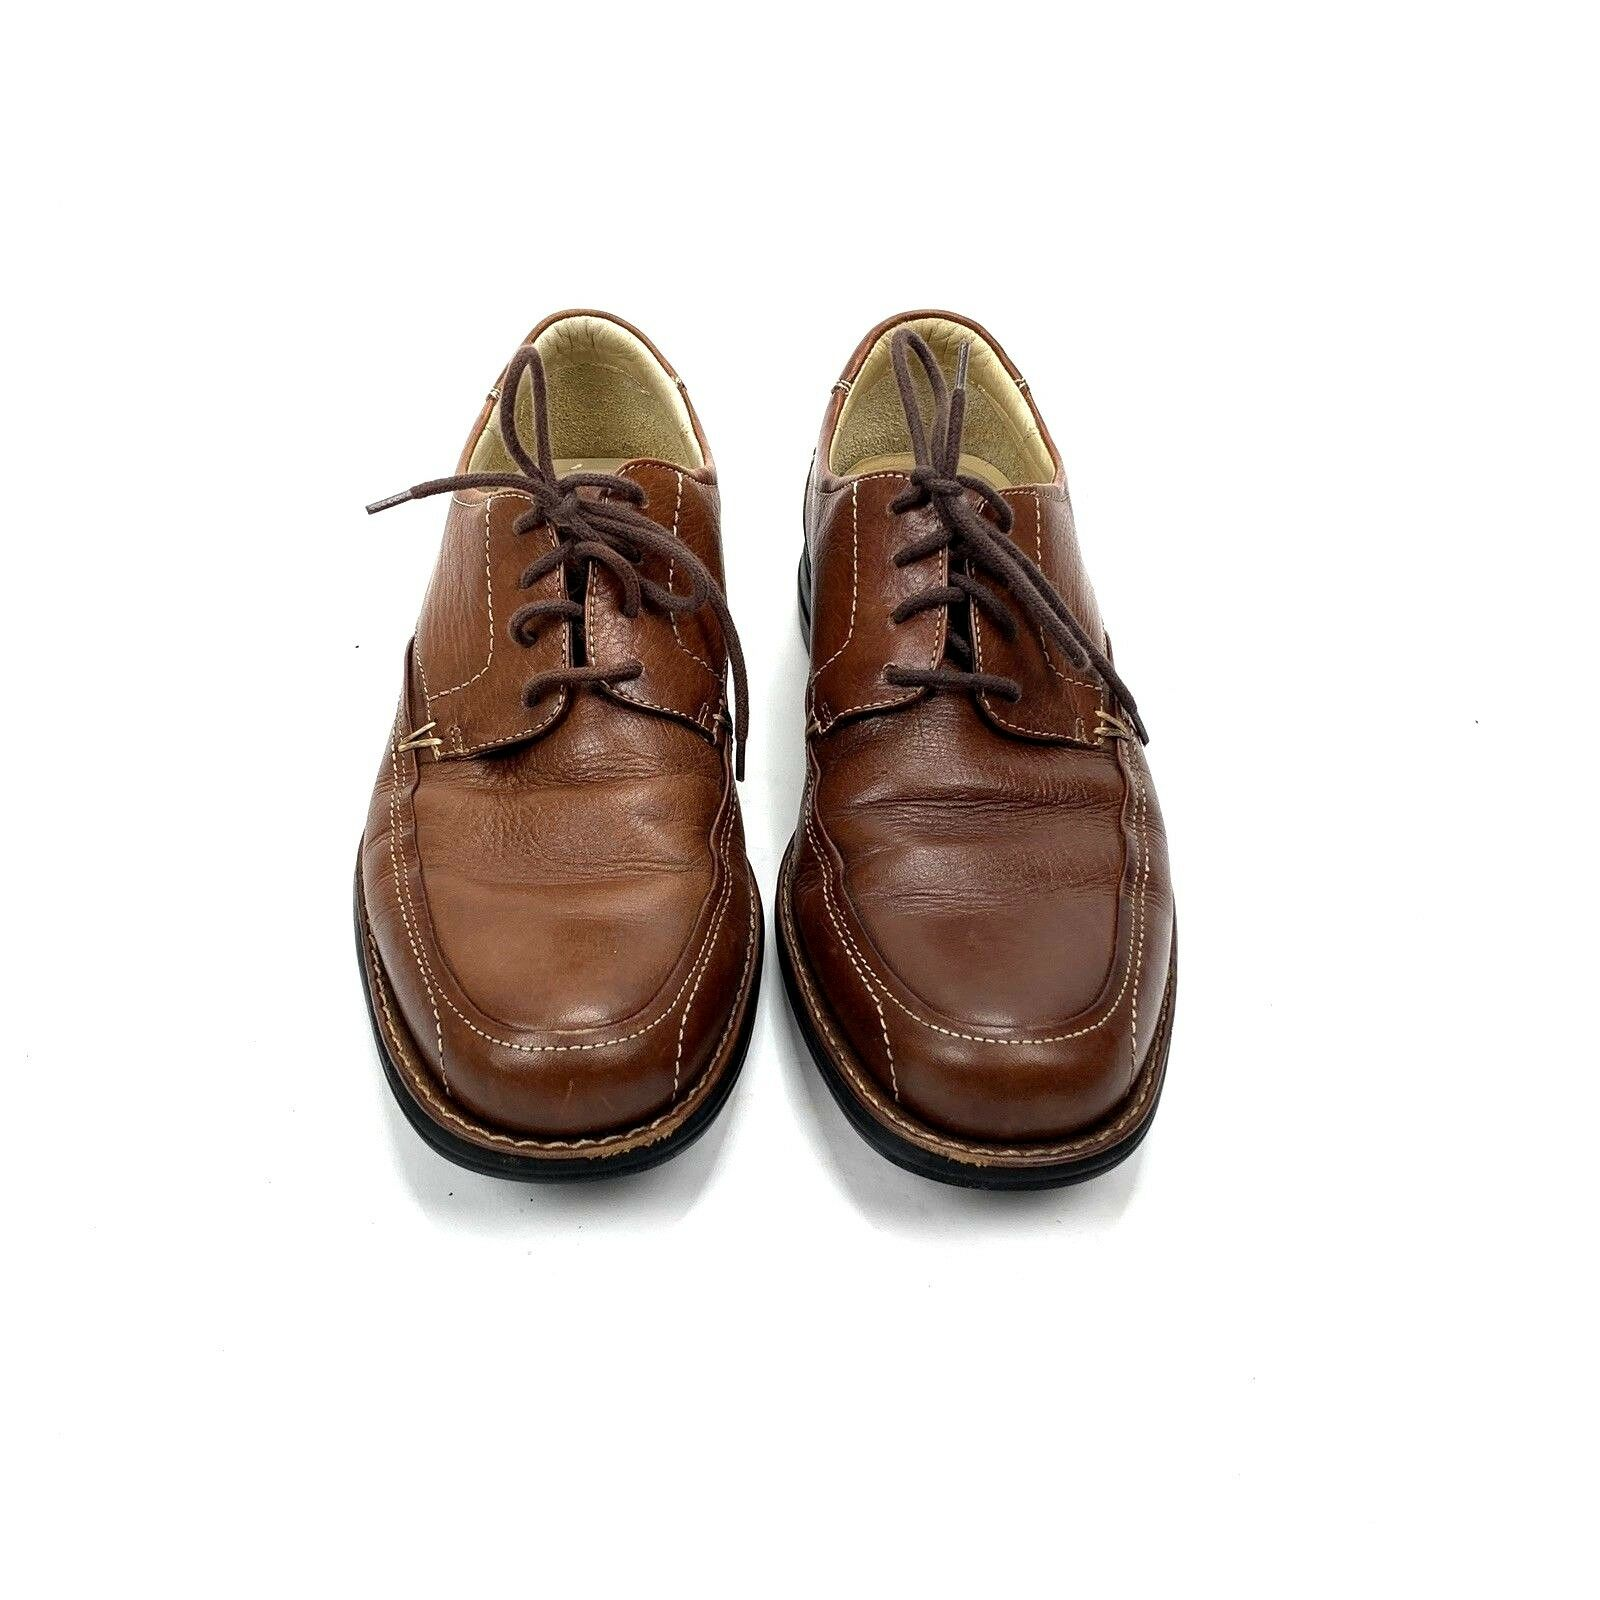 Johnston & Murphy Mens Sheepskin Brown Leather Oxfords Sz 8M